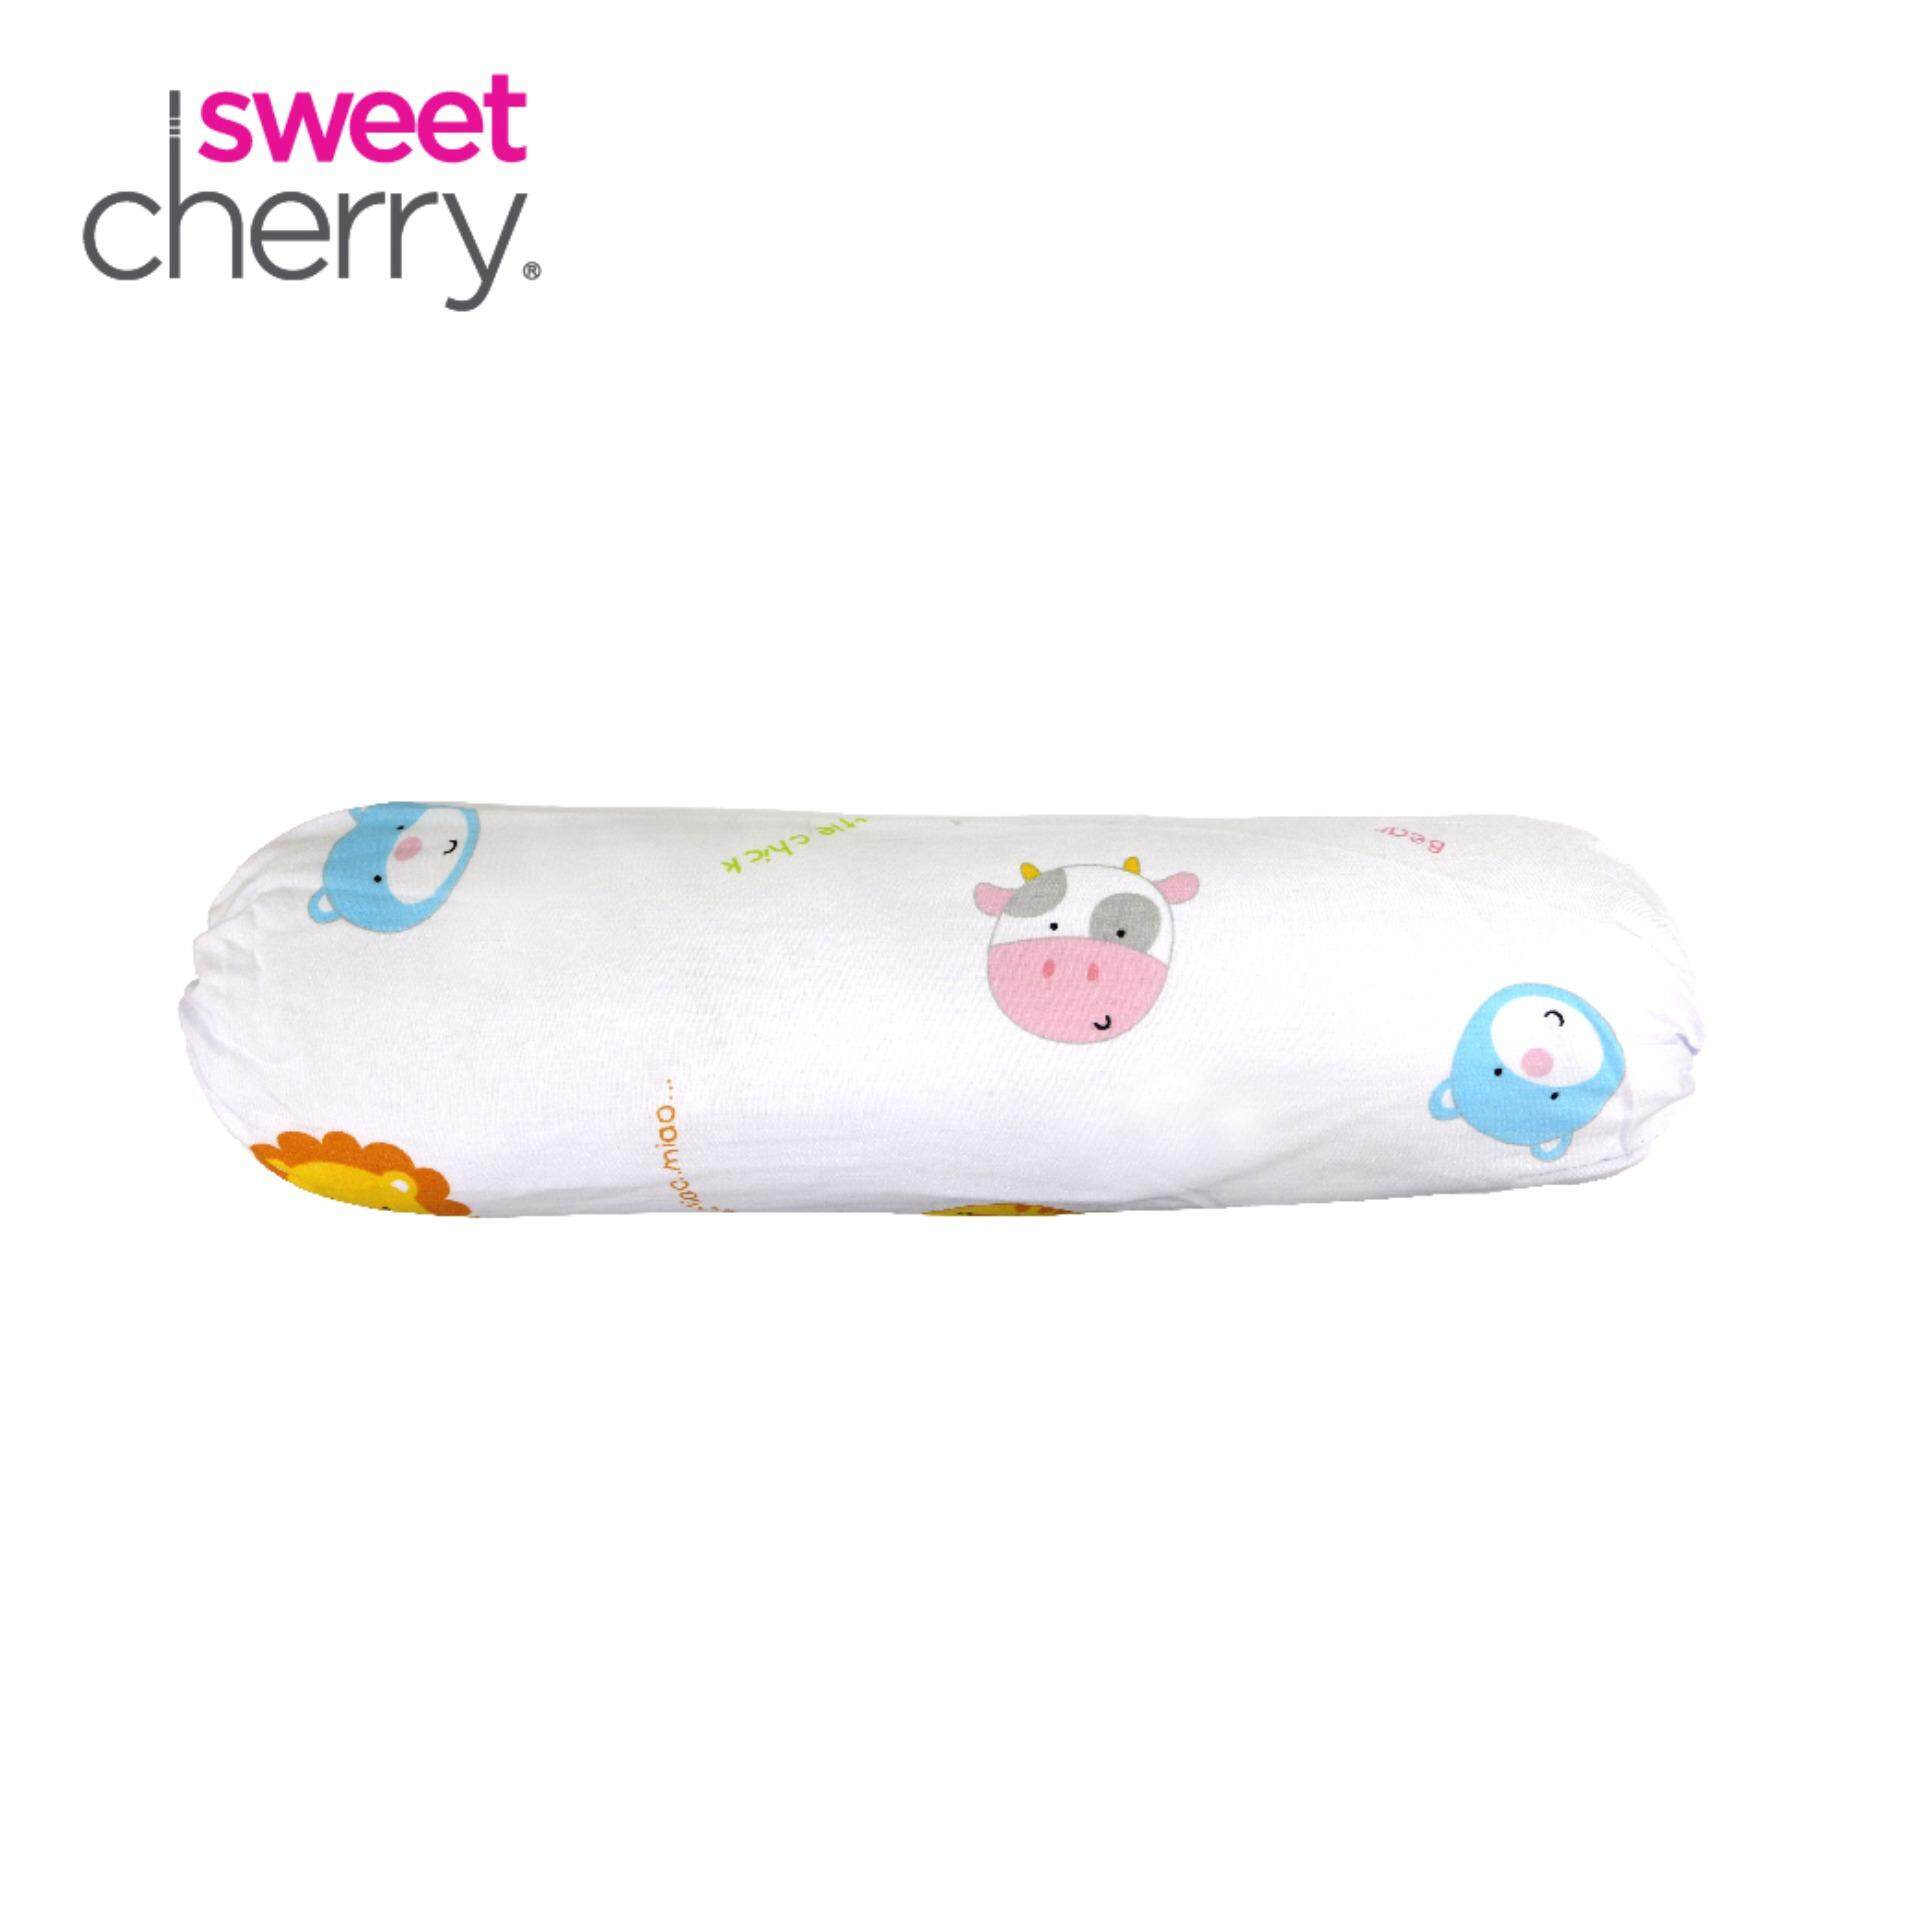 Sell Bantal Hollowfill Cheapest Best Quality My Store Sarung For Comfy Baby Adjustable Brown Myr 5